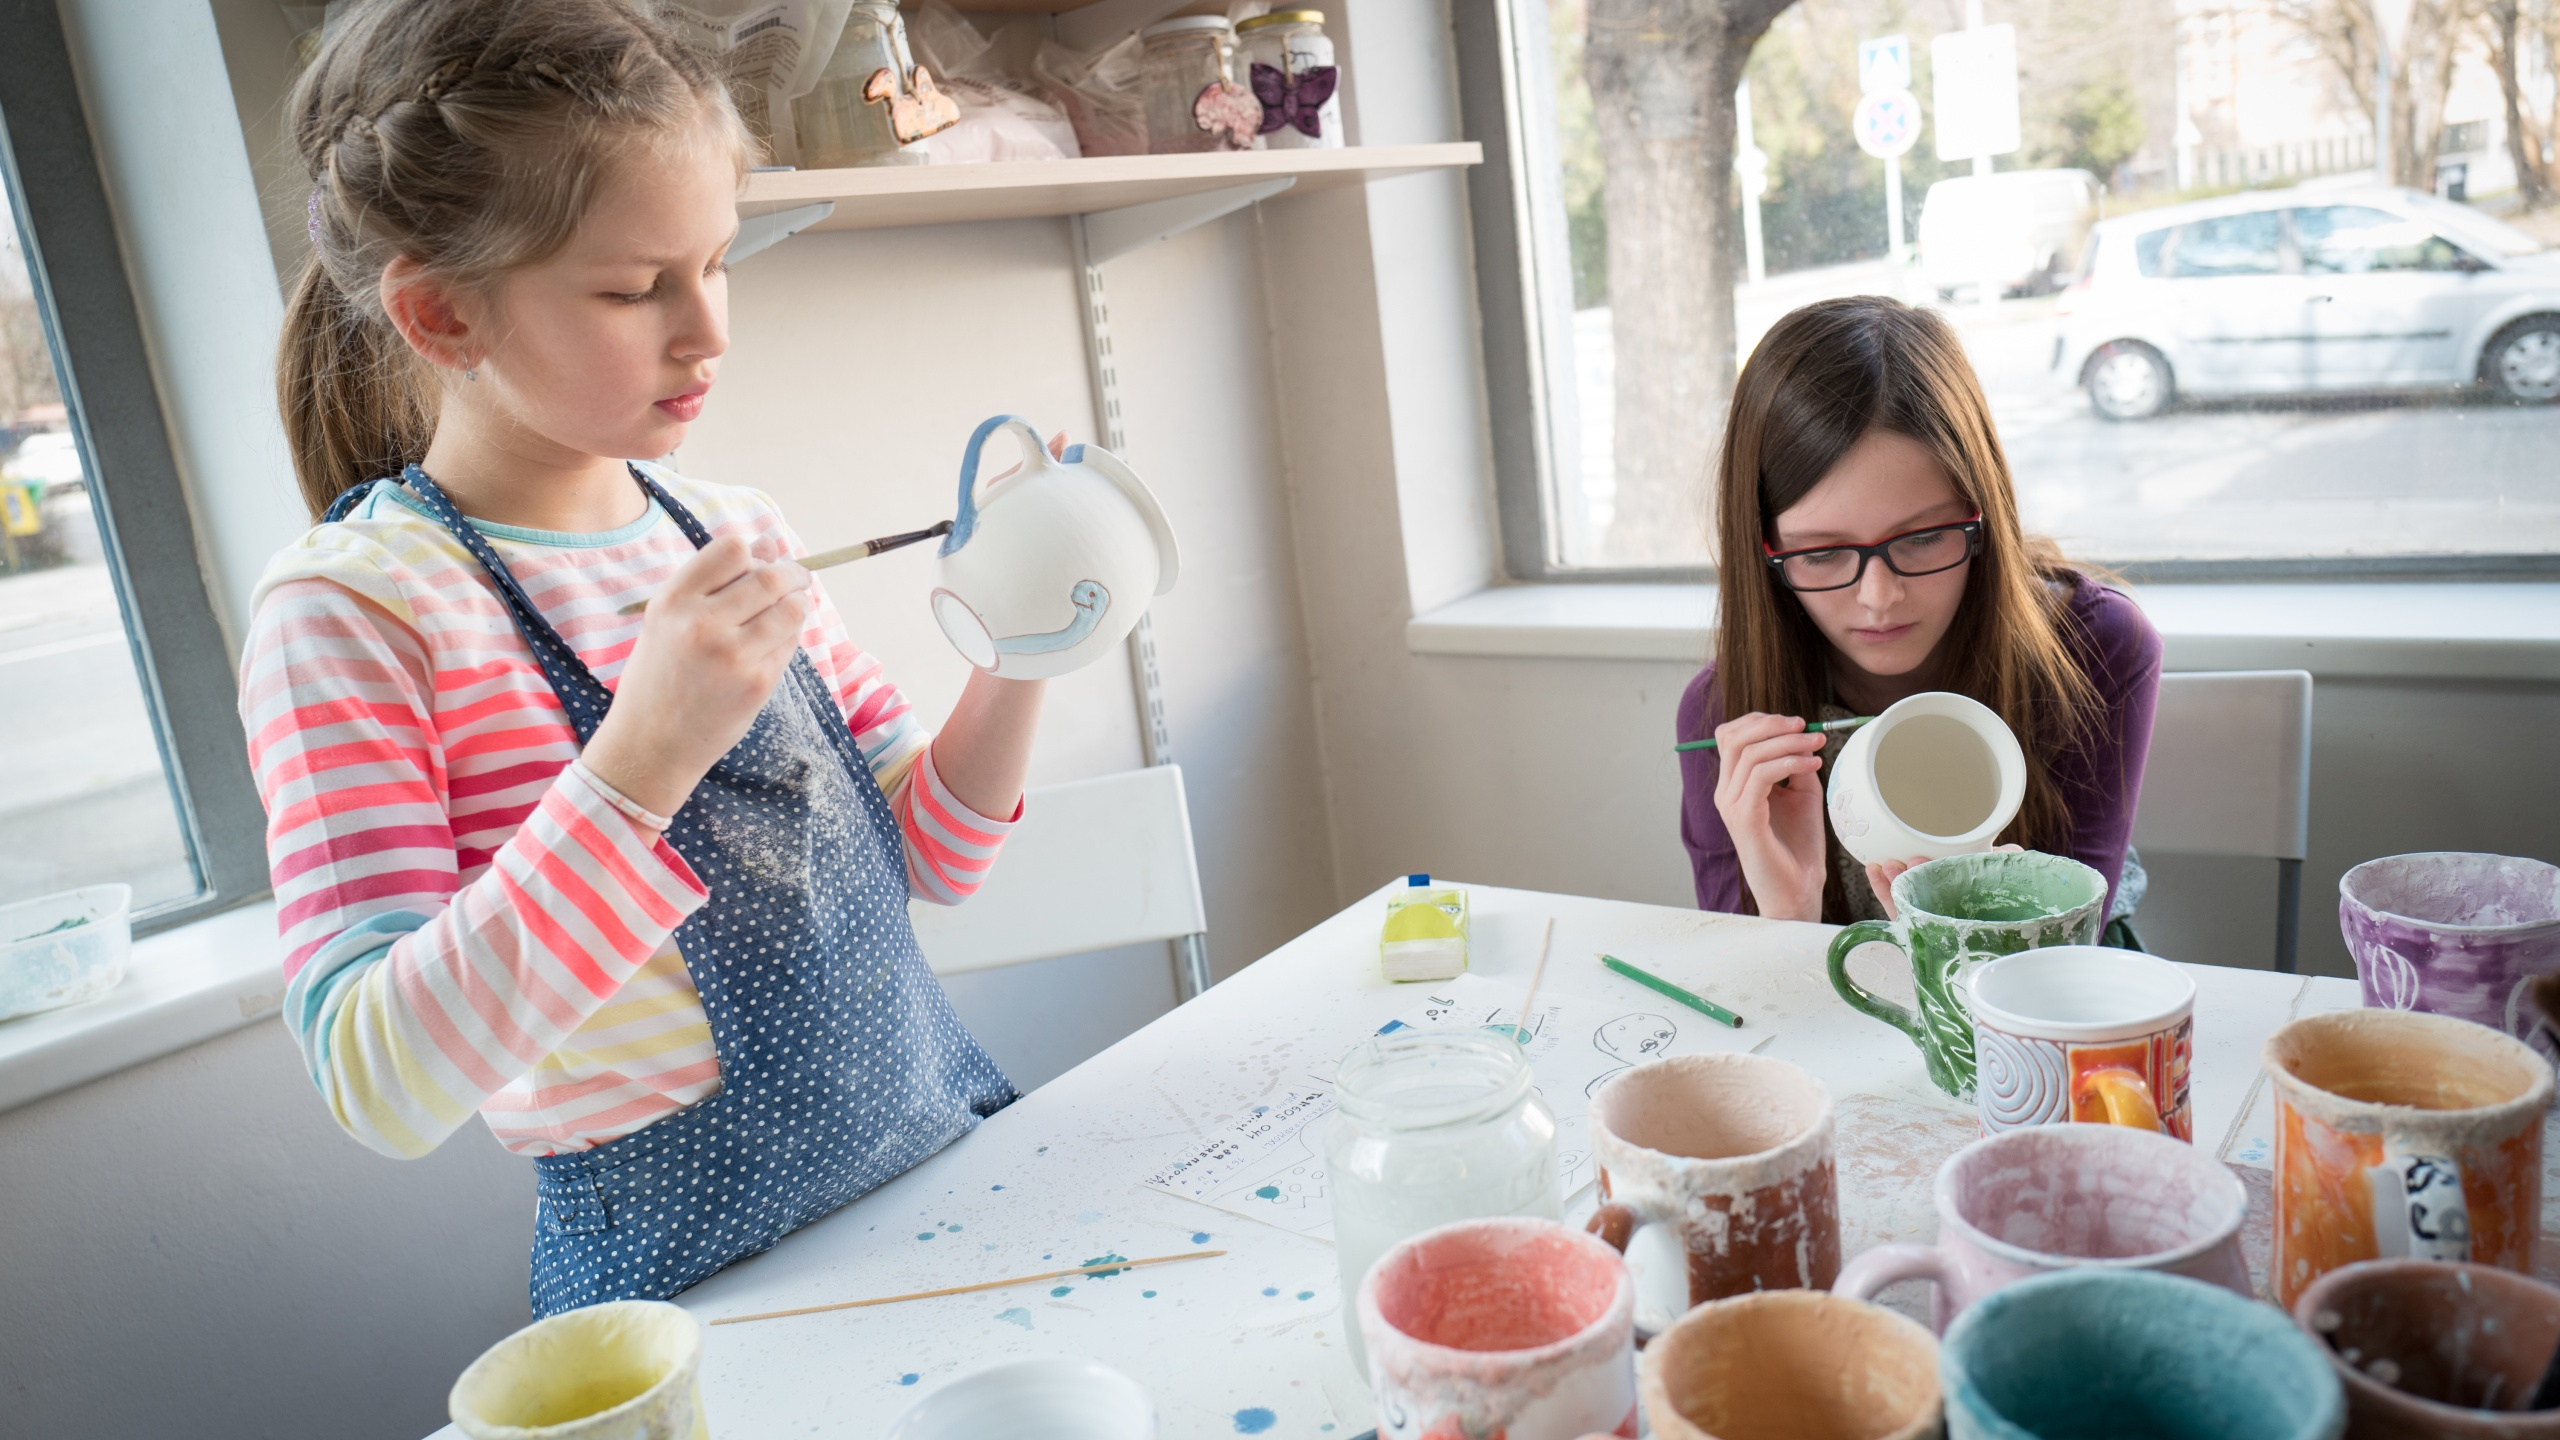 Children and their hobby pottery painting_1559757579223